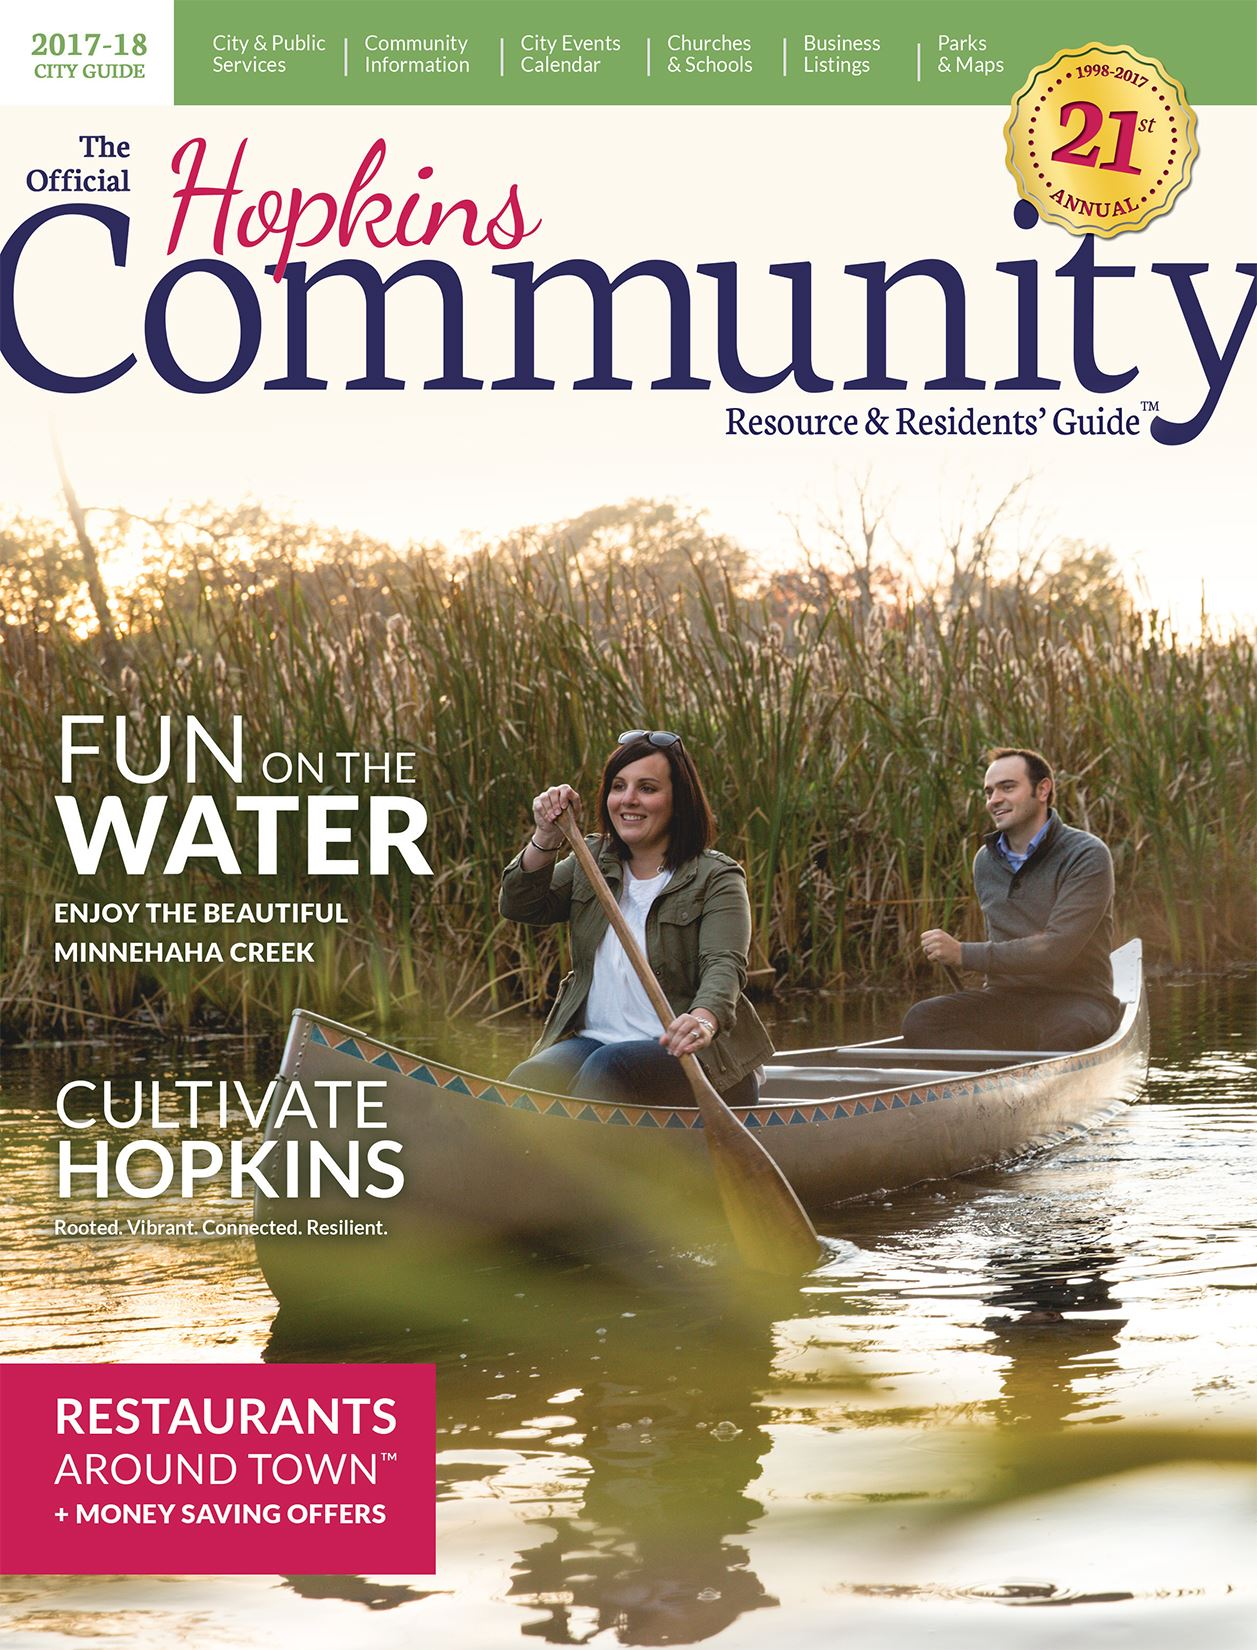 2017 Hopkins Community Guide Cover